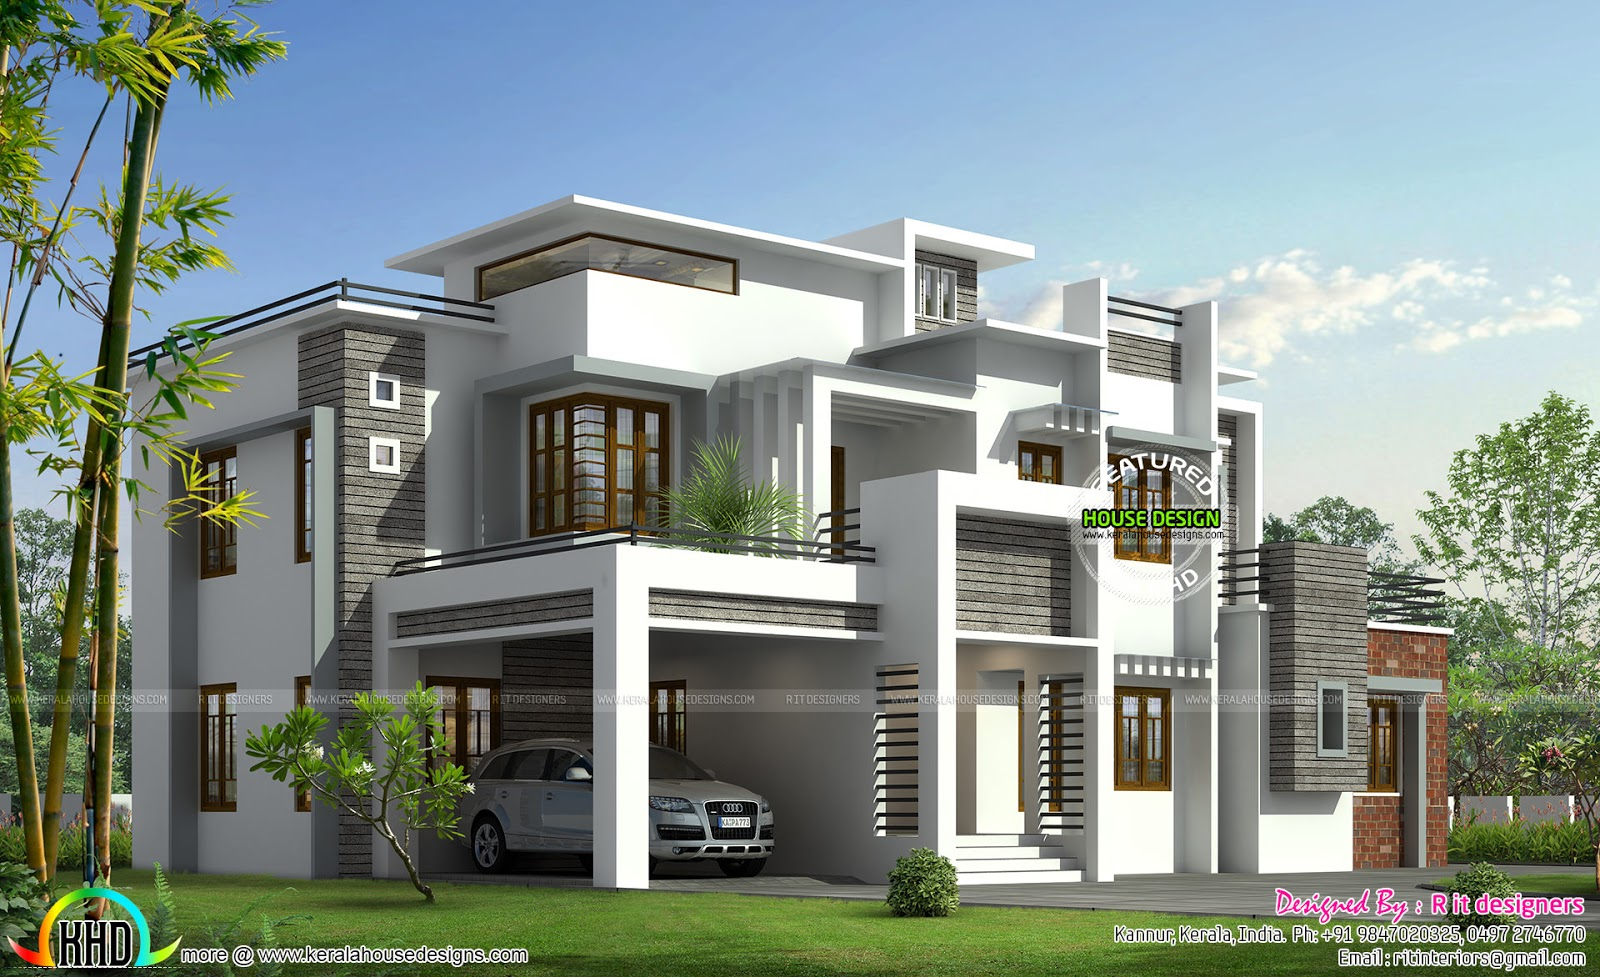 Box model contemporary house kerala home design and for Latest model house design